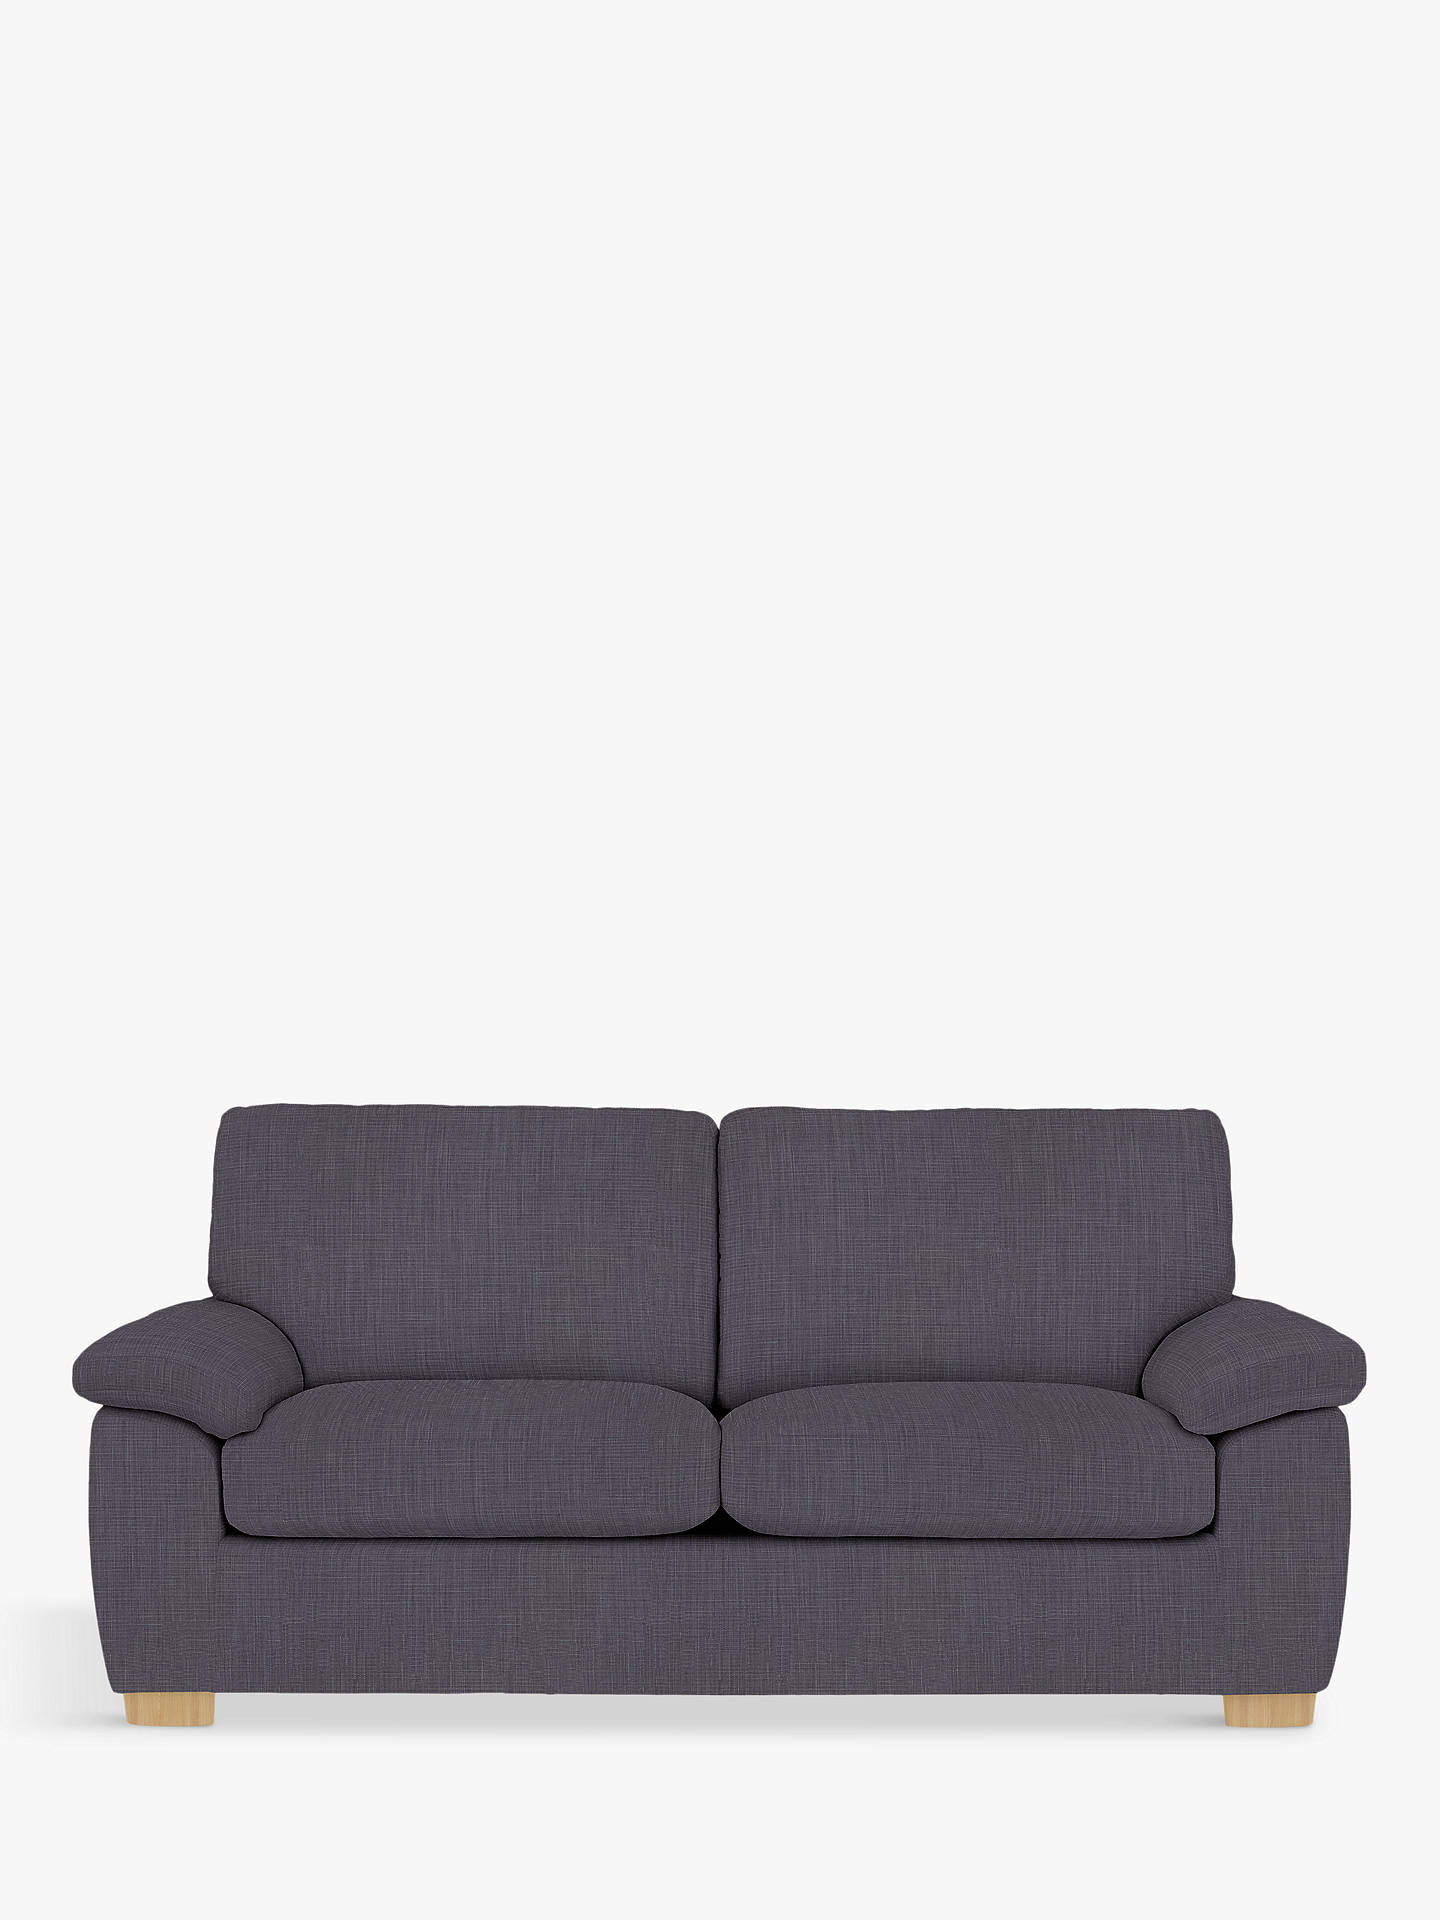 Buy John Lewis & Partners Camden Large 3 Seater Sofa, Light Leg, Glyn Charcoal Online at johnlewis.com